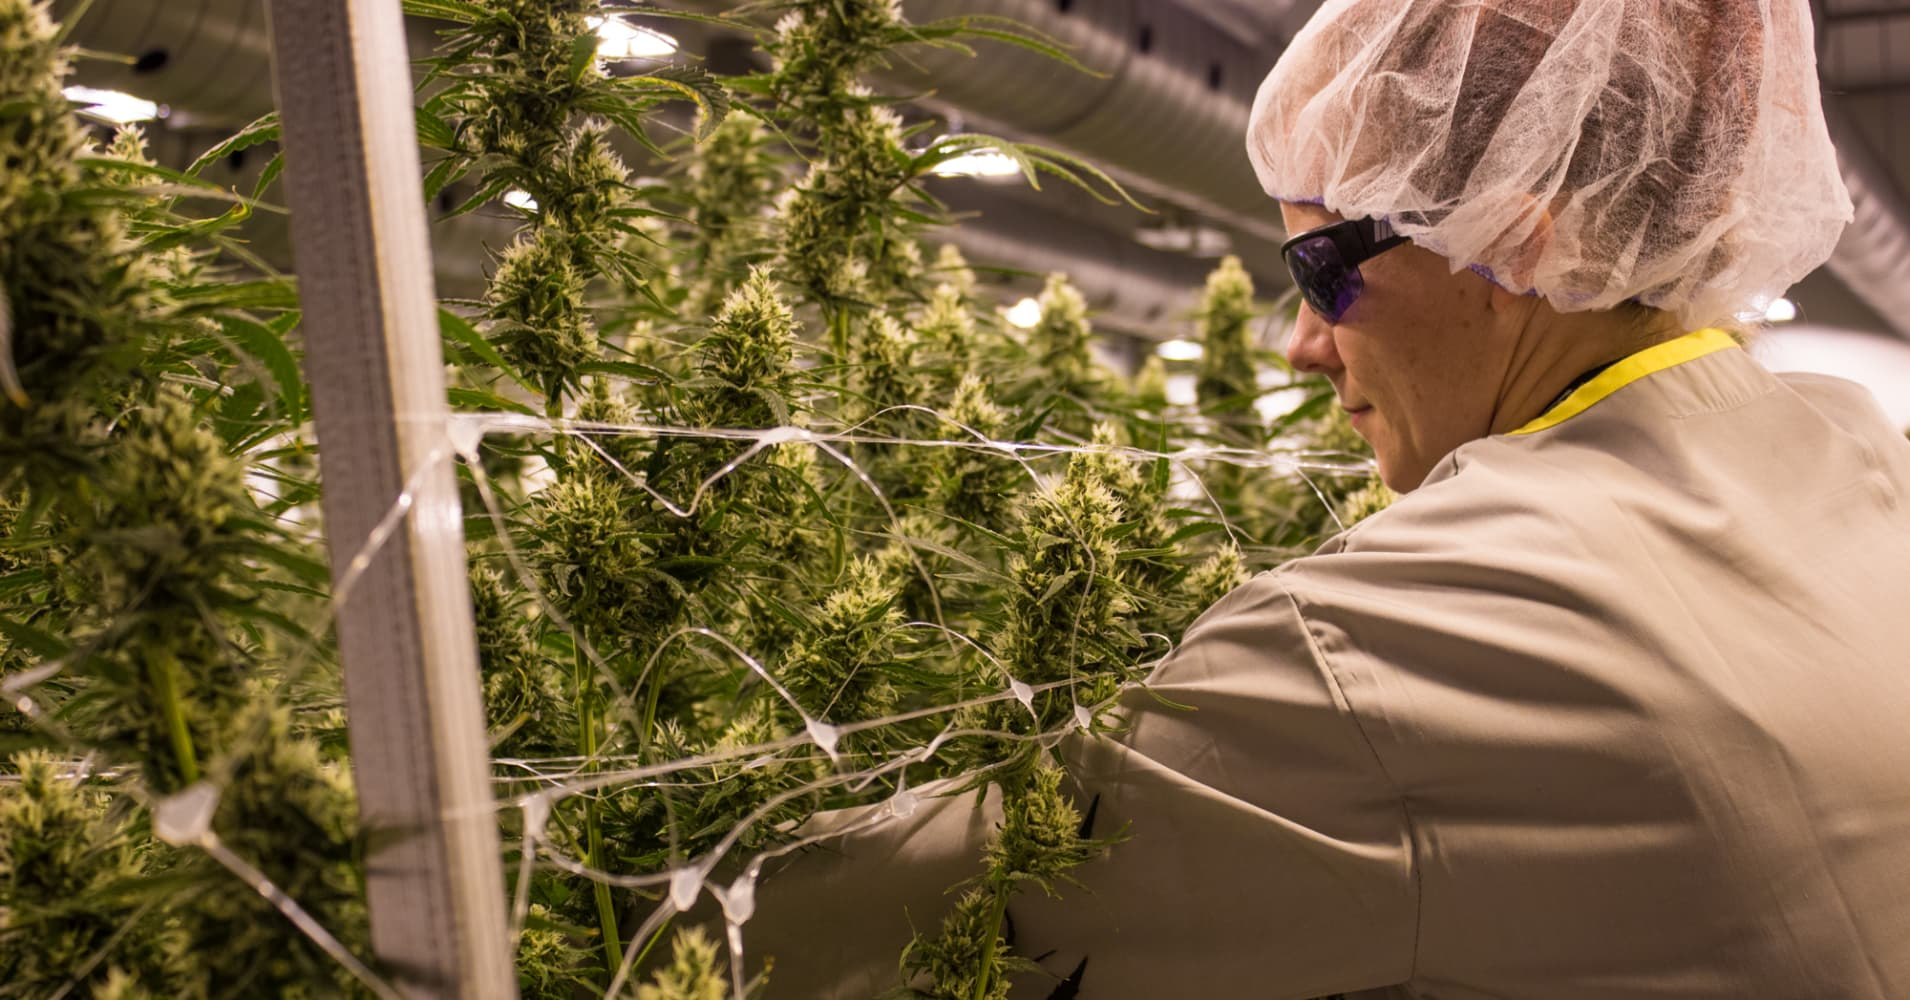 The marijuana industry looks like the fastest-growing job market in the country